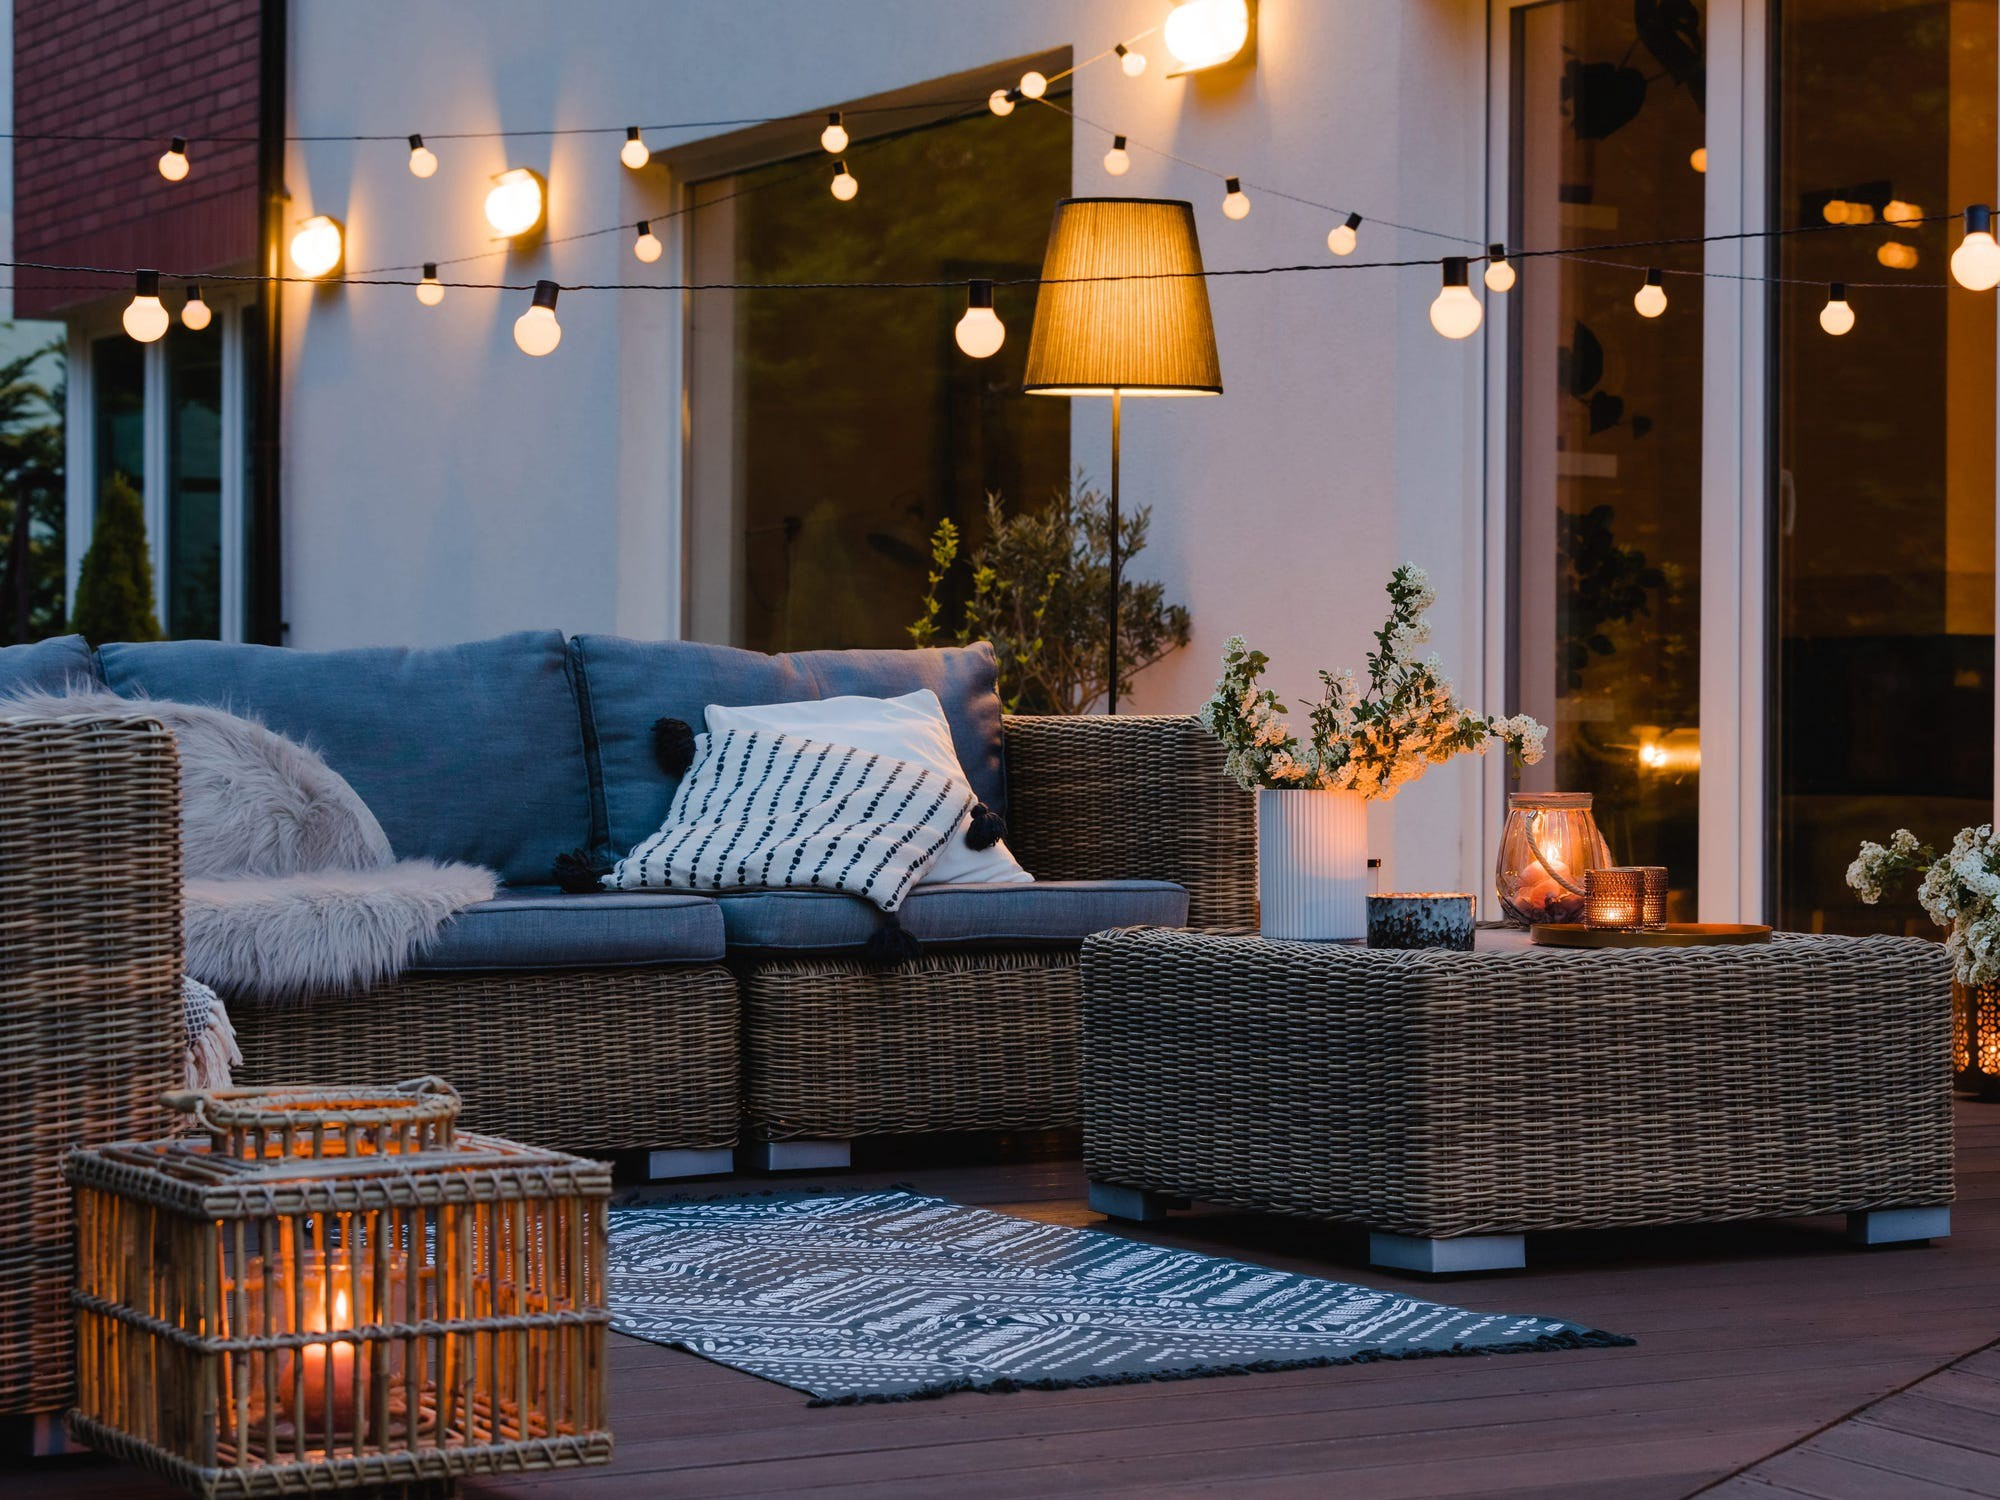 An outdoor space.